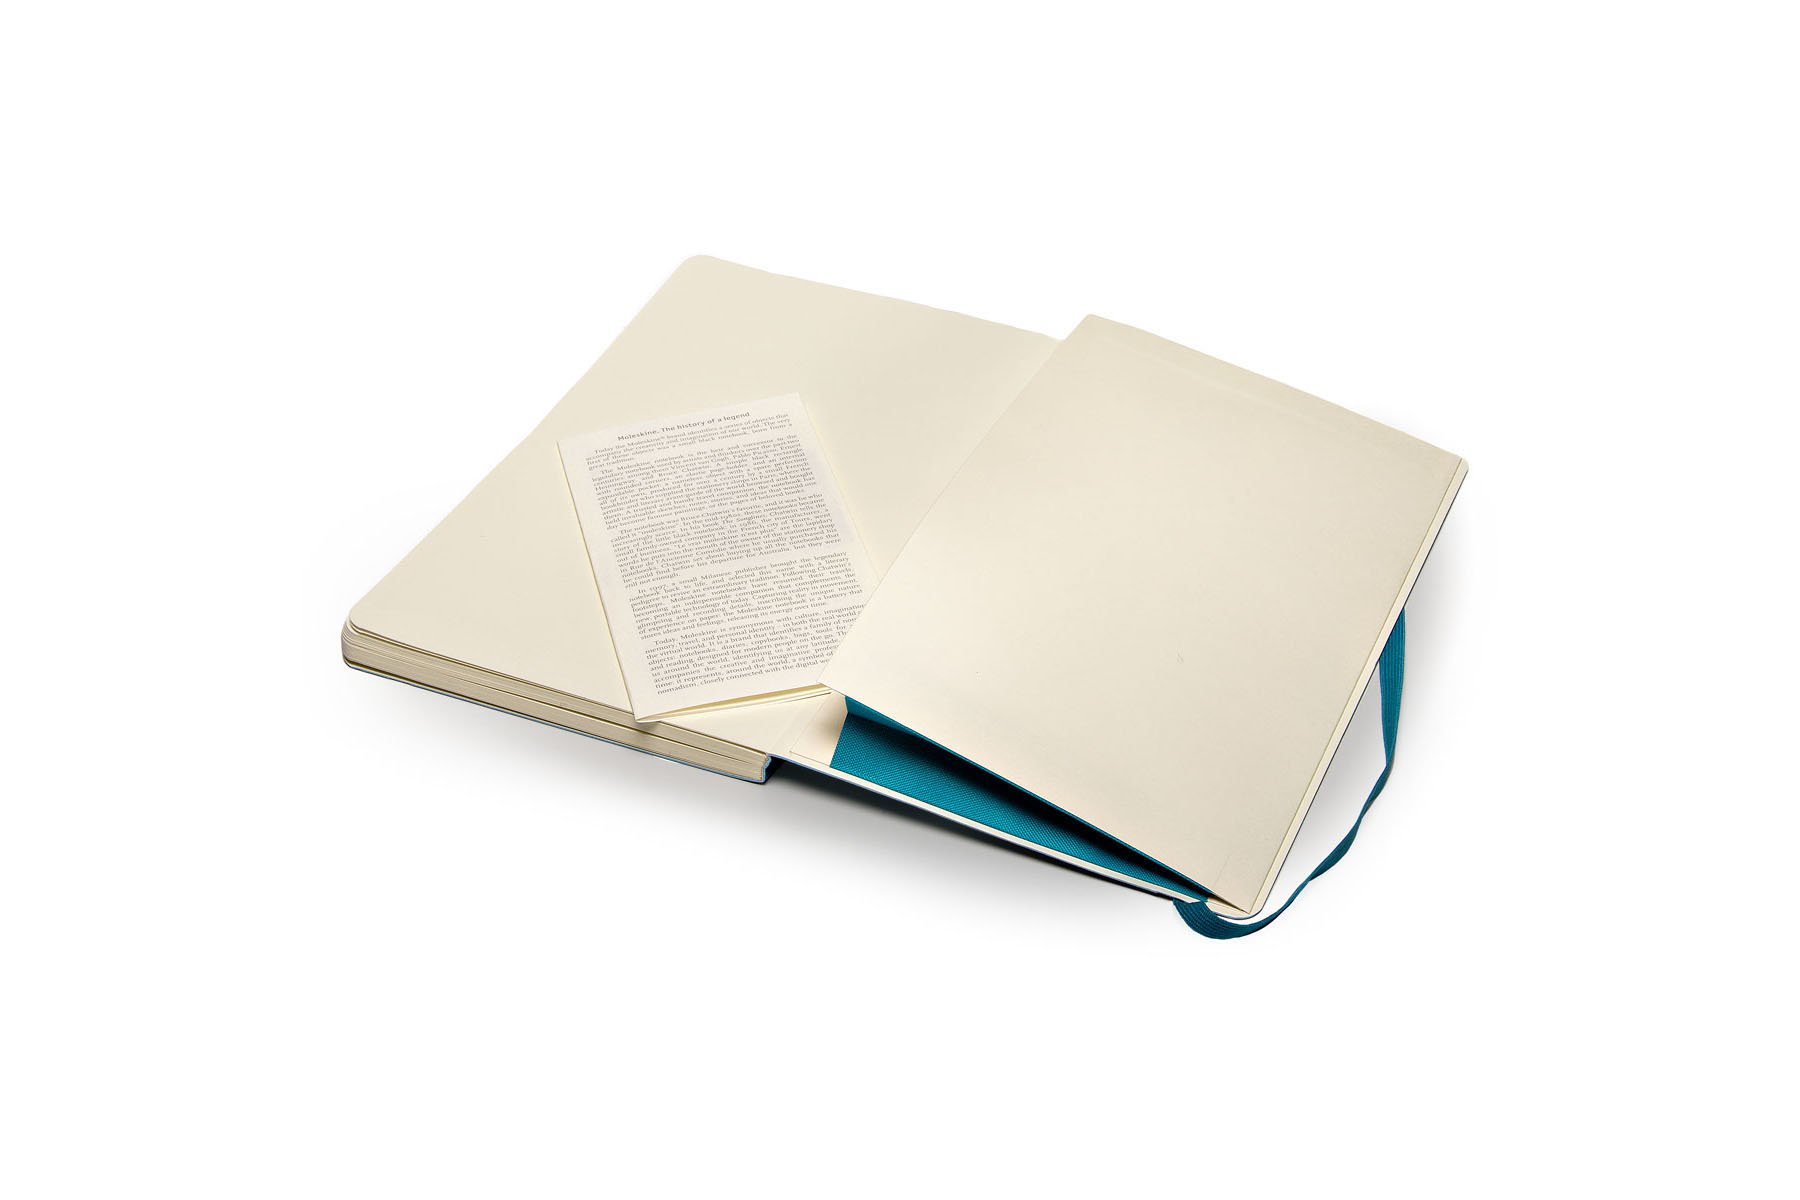 Moleskine Classic Notebook Large (5 x 8.25''), Dotted Pages, Underwater Blue, Soft Cover Notebook for Writing, Sketching, Journals by Ingramcontent (Image #5)